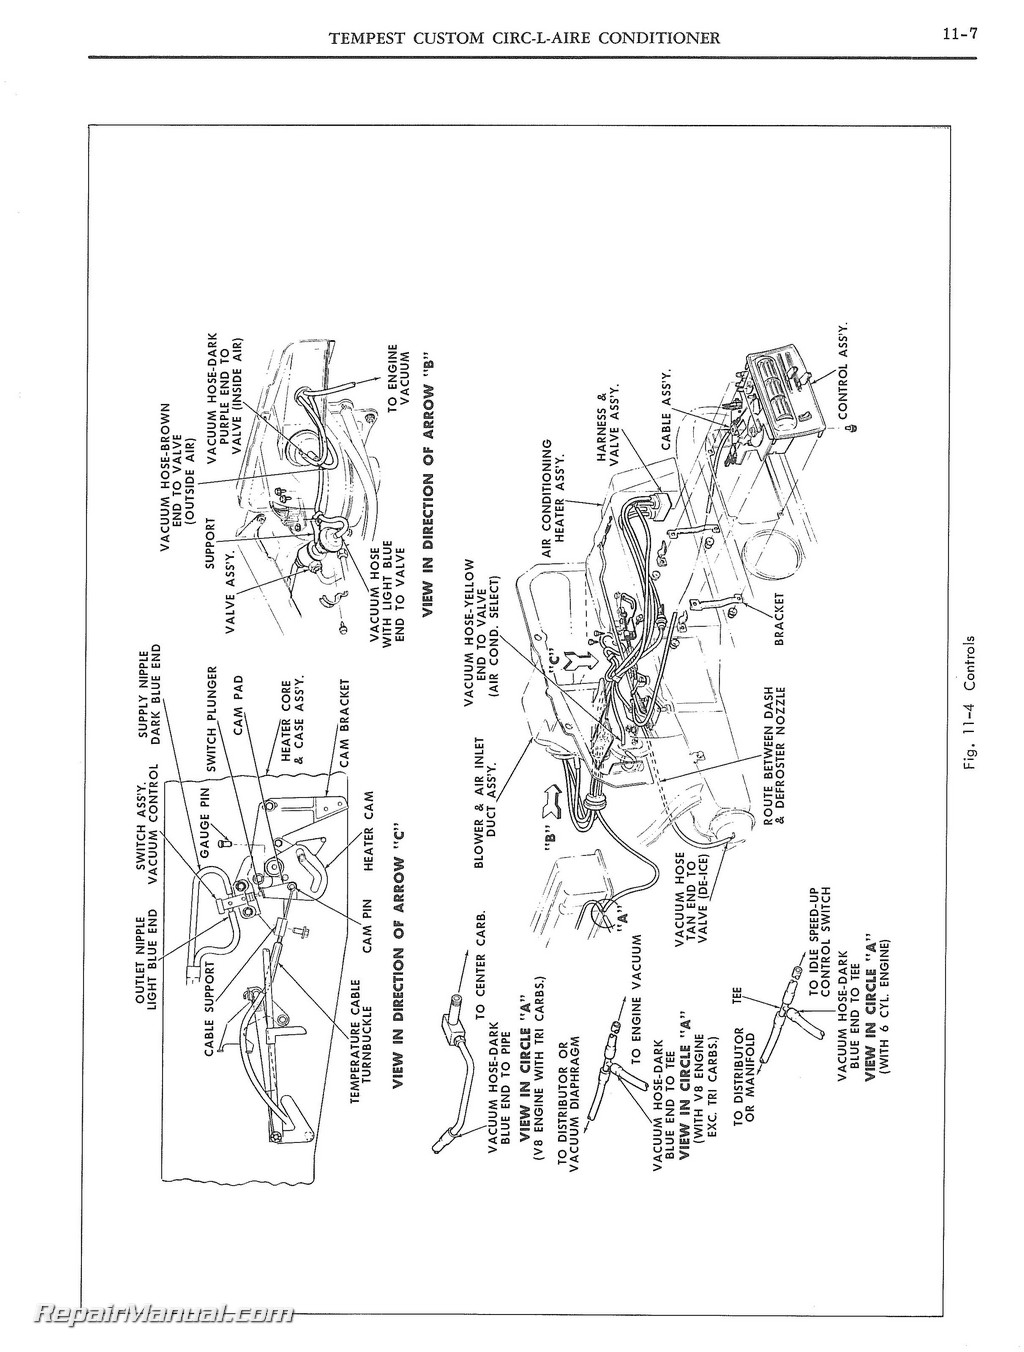 Pontiac And Tempest Air Conditioning Manual